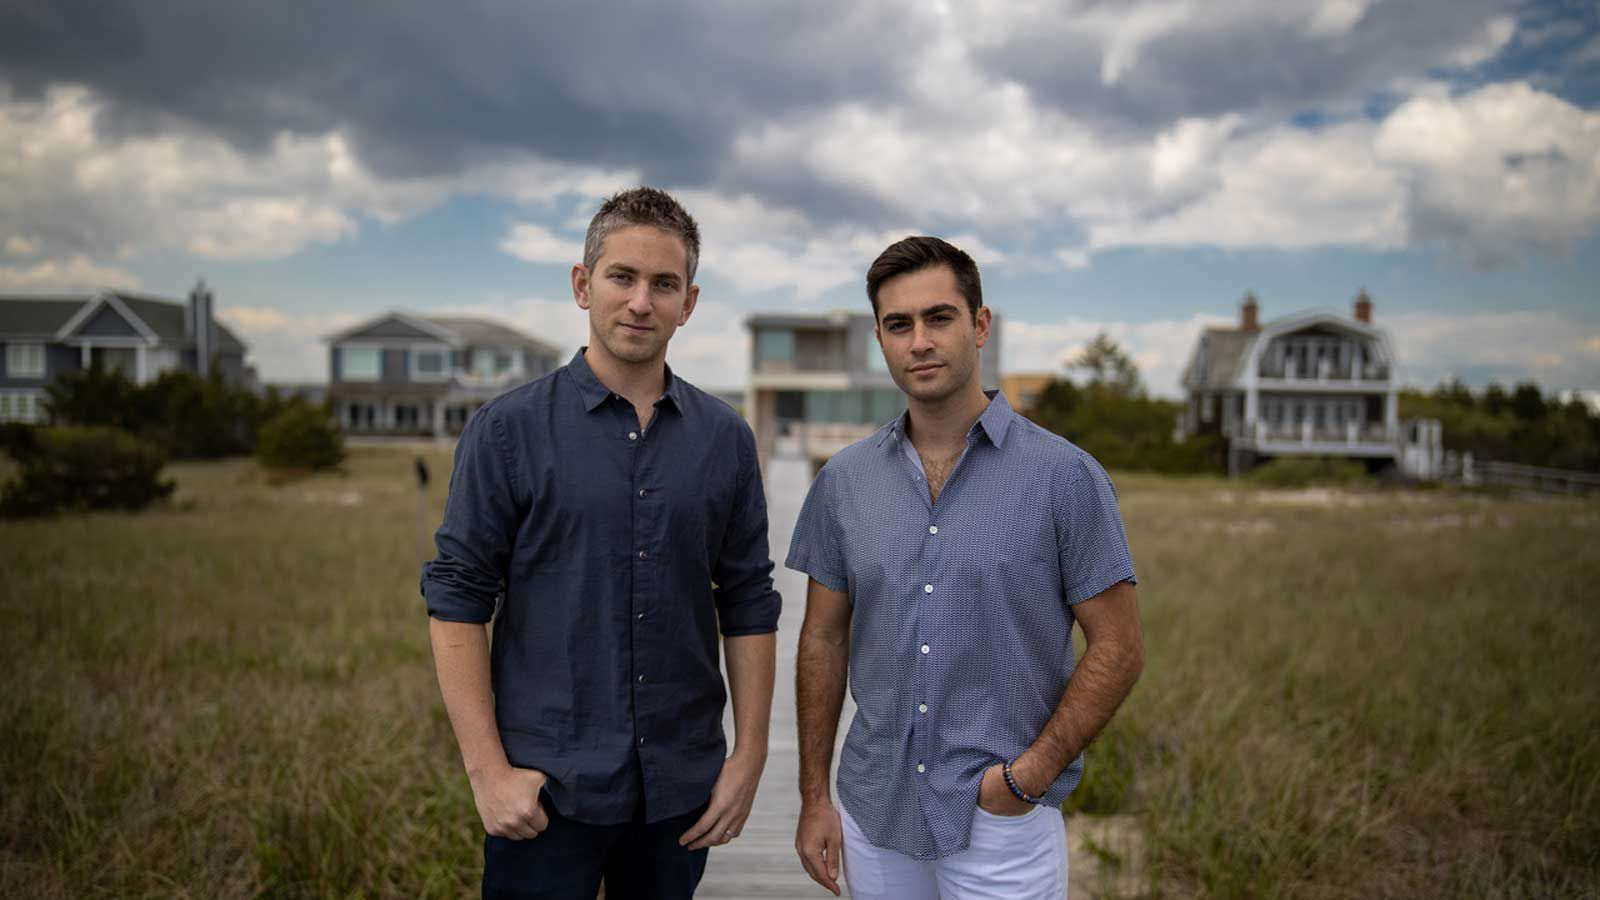 The founders of StayMarquis decided to create the platform after dealing with personal issues with rental homes.